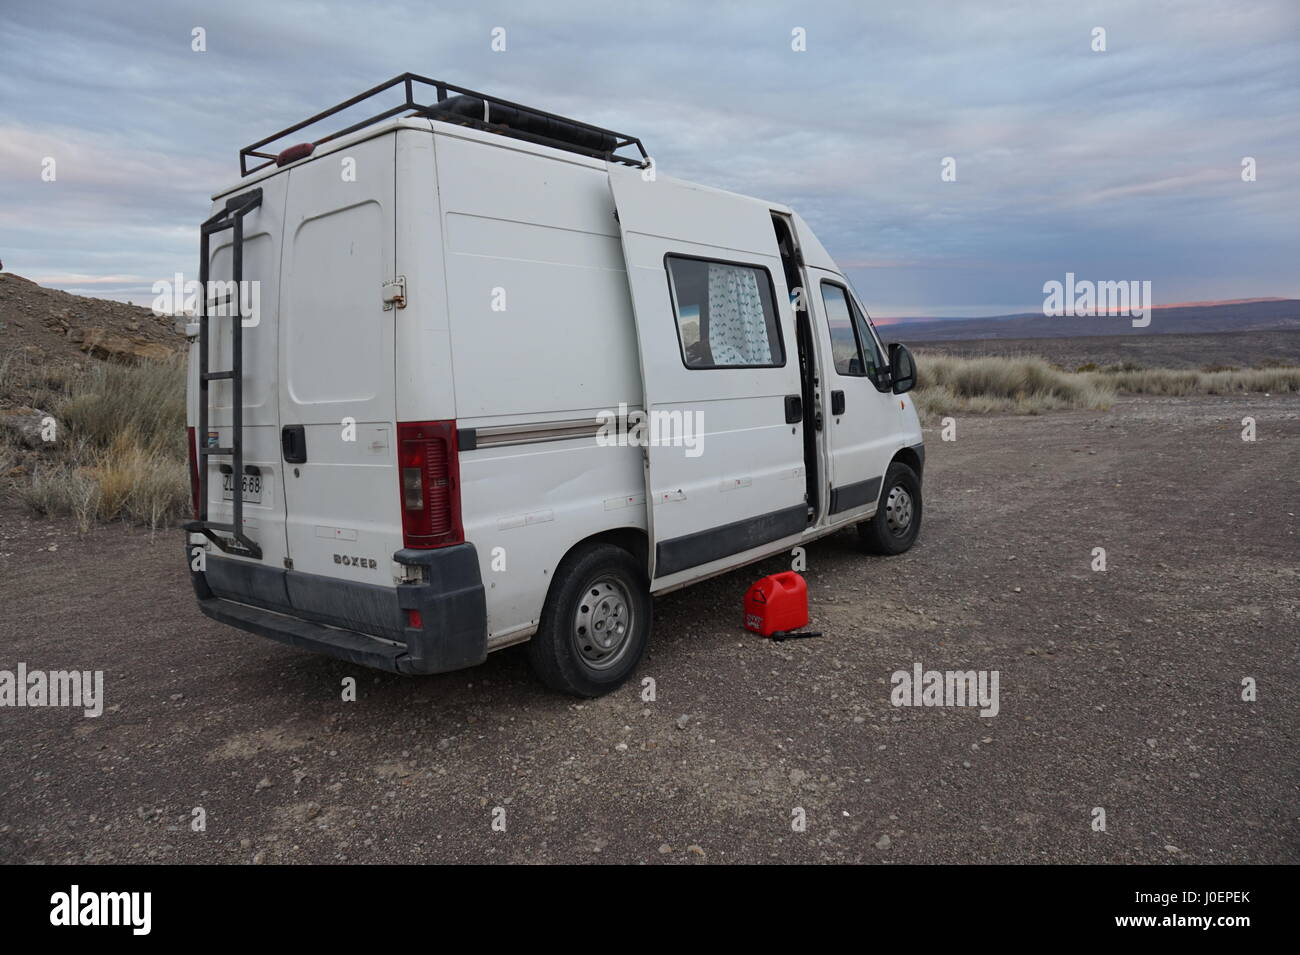 Our Peugeot Boxer motorhome camped in the Argentinian wilderness Stock Photo